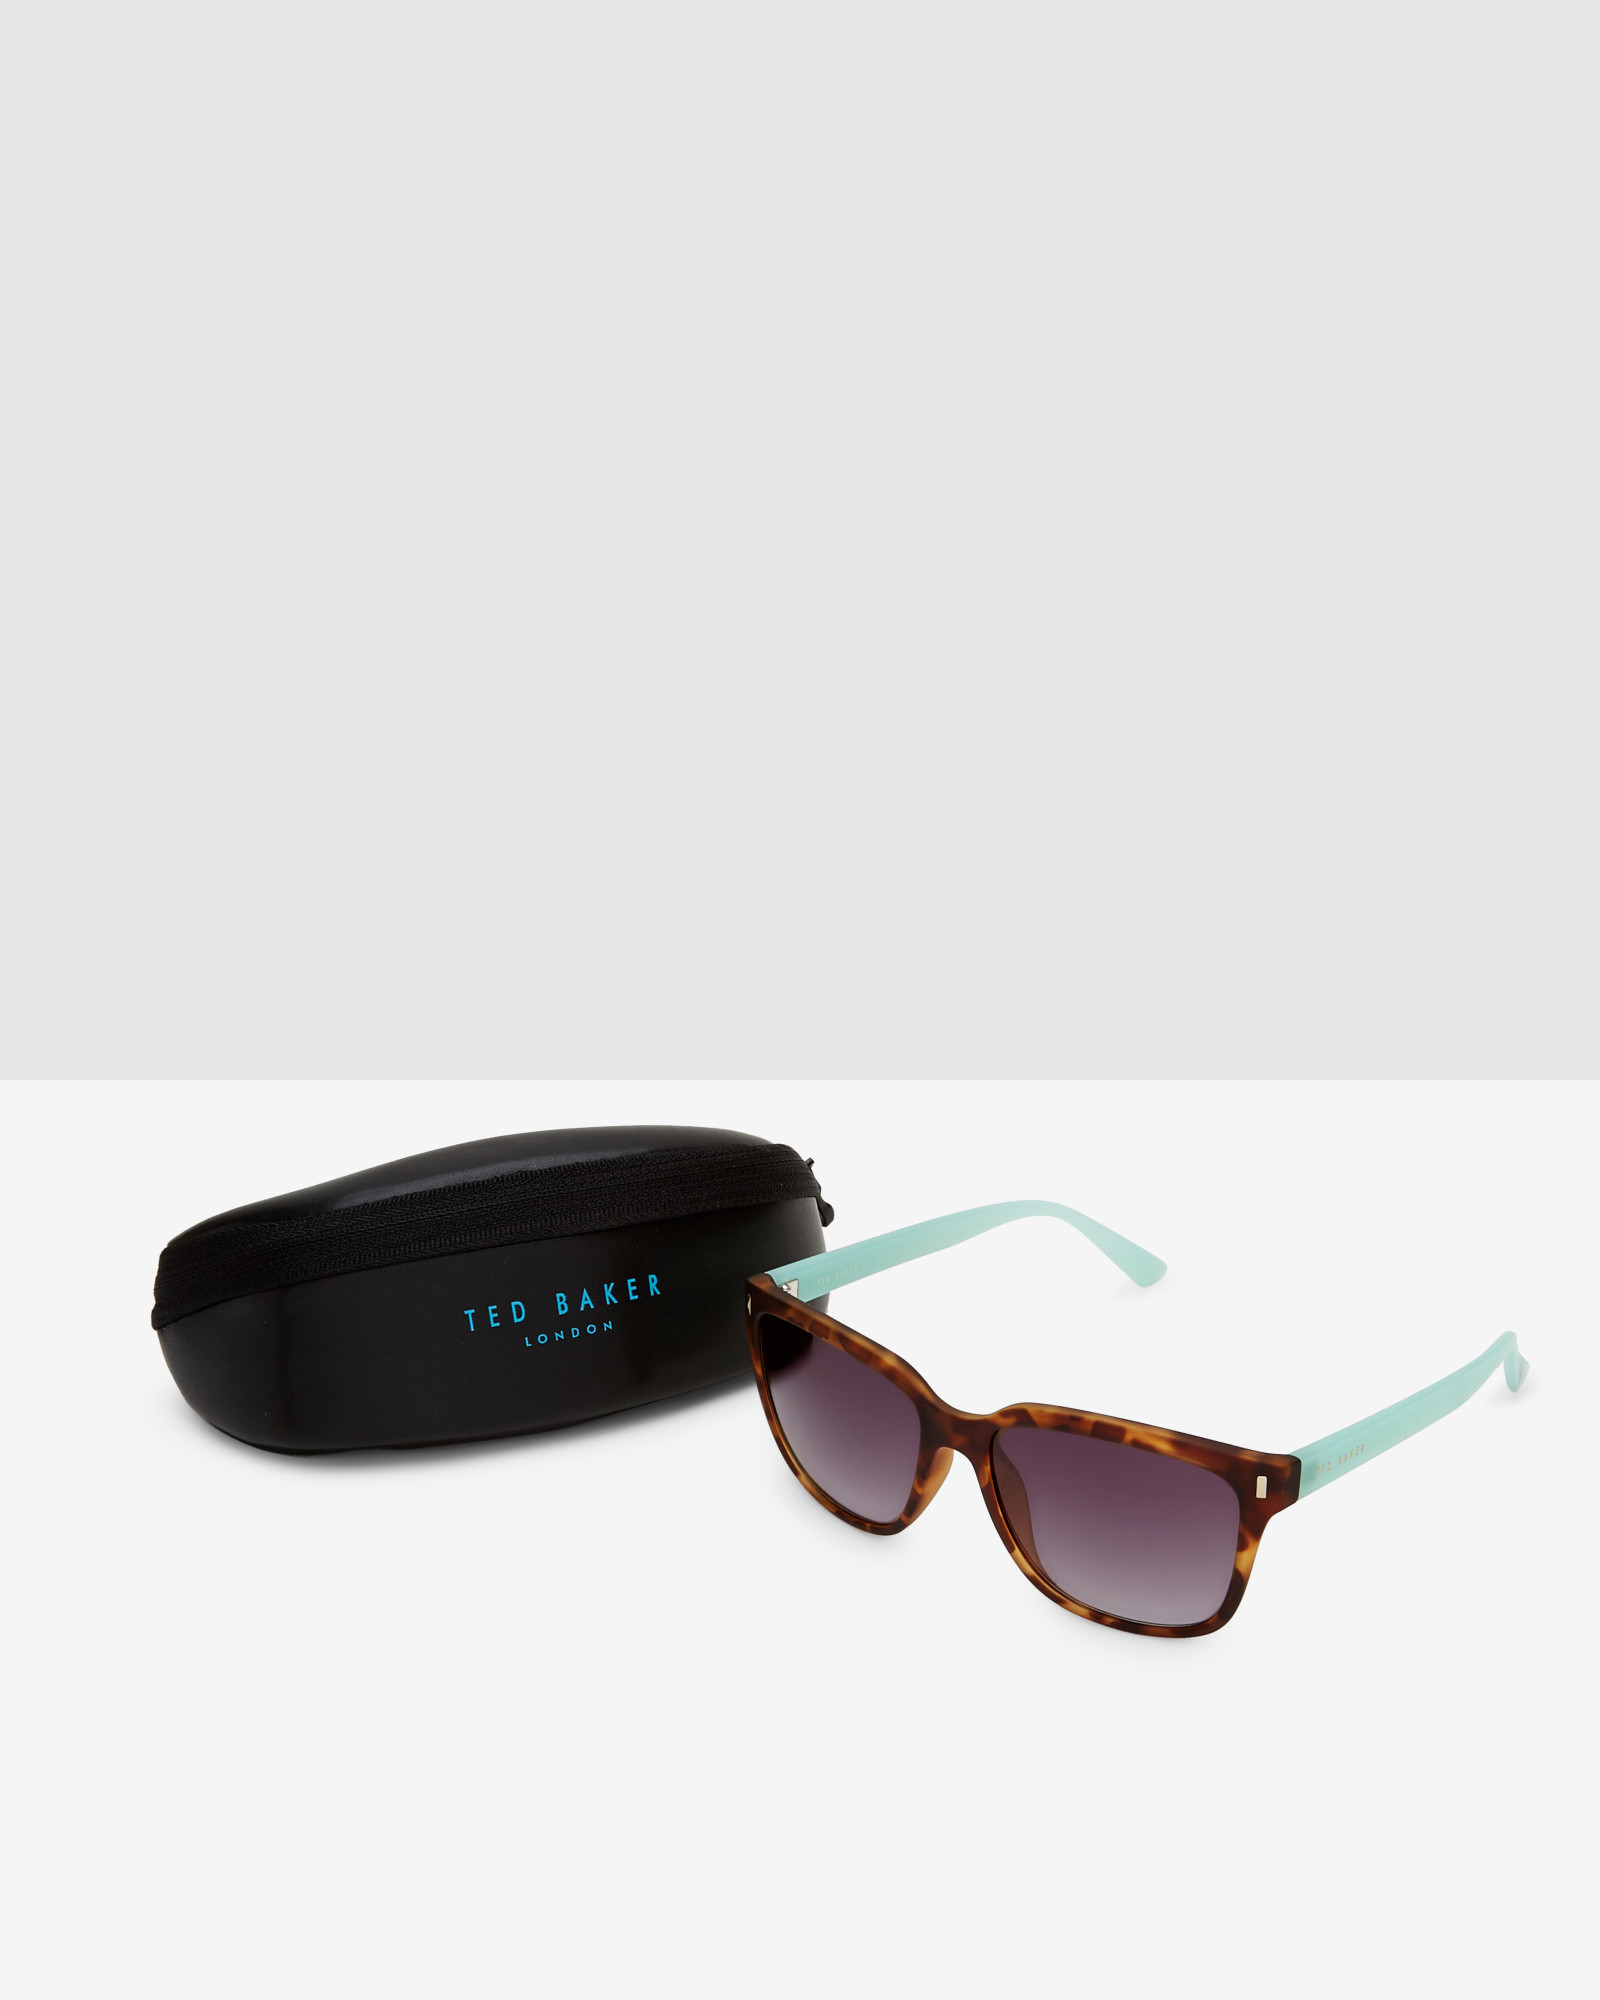 d46c4d91360dd Ted Baker Contrast Arms Sunglasses in Brown - Lyst